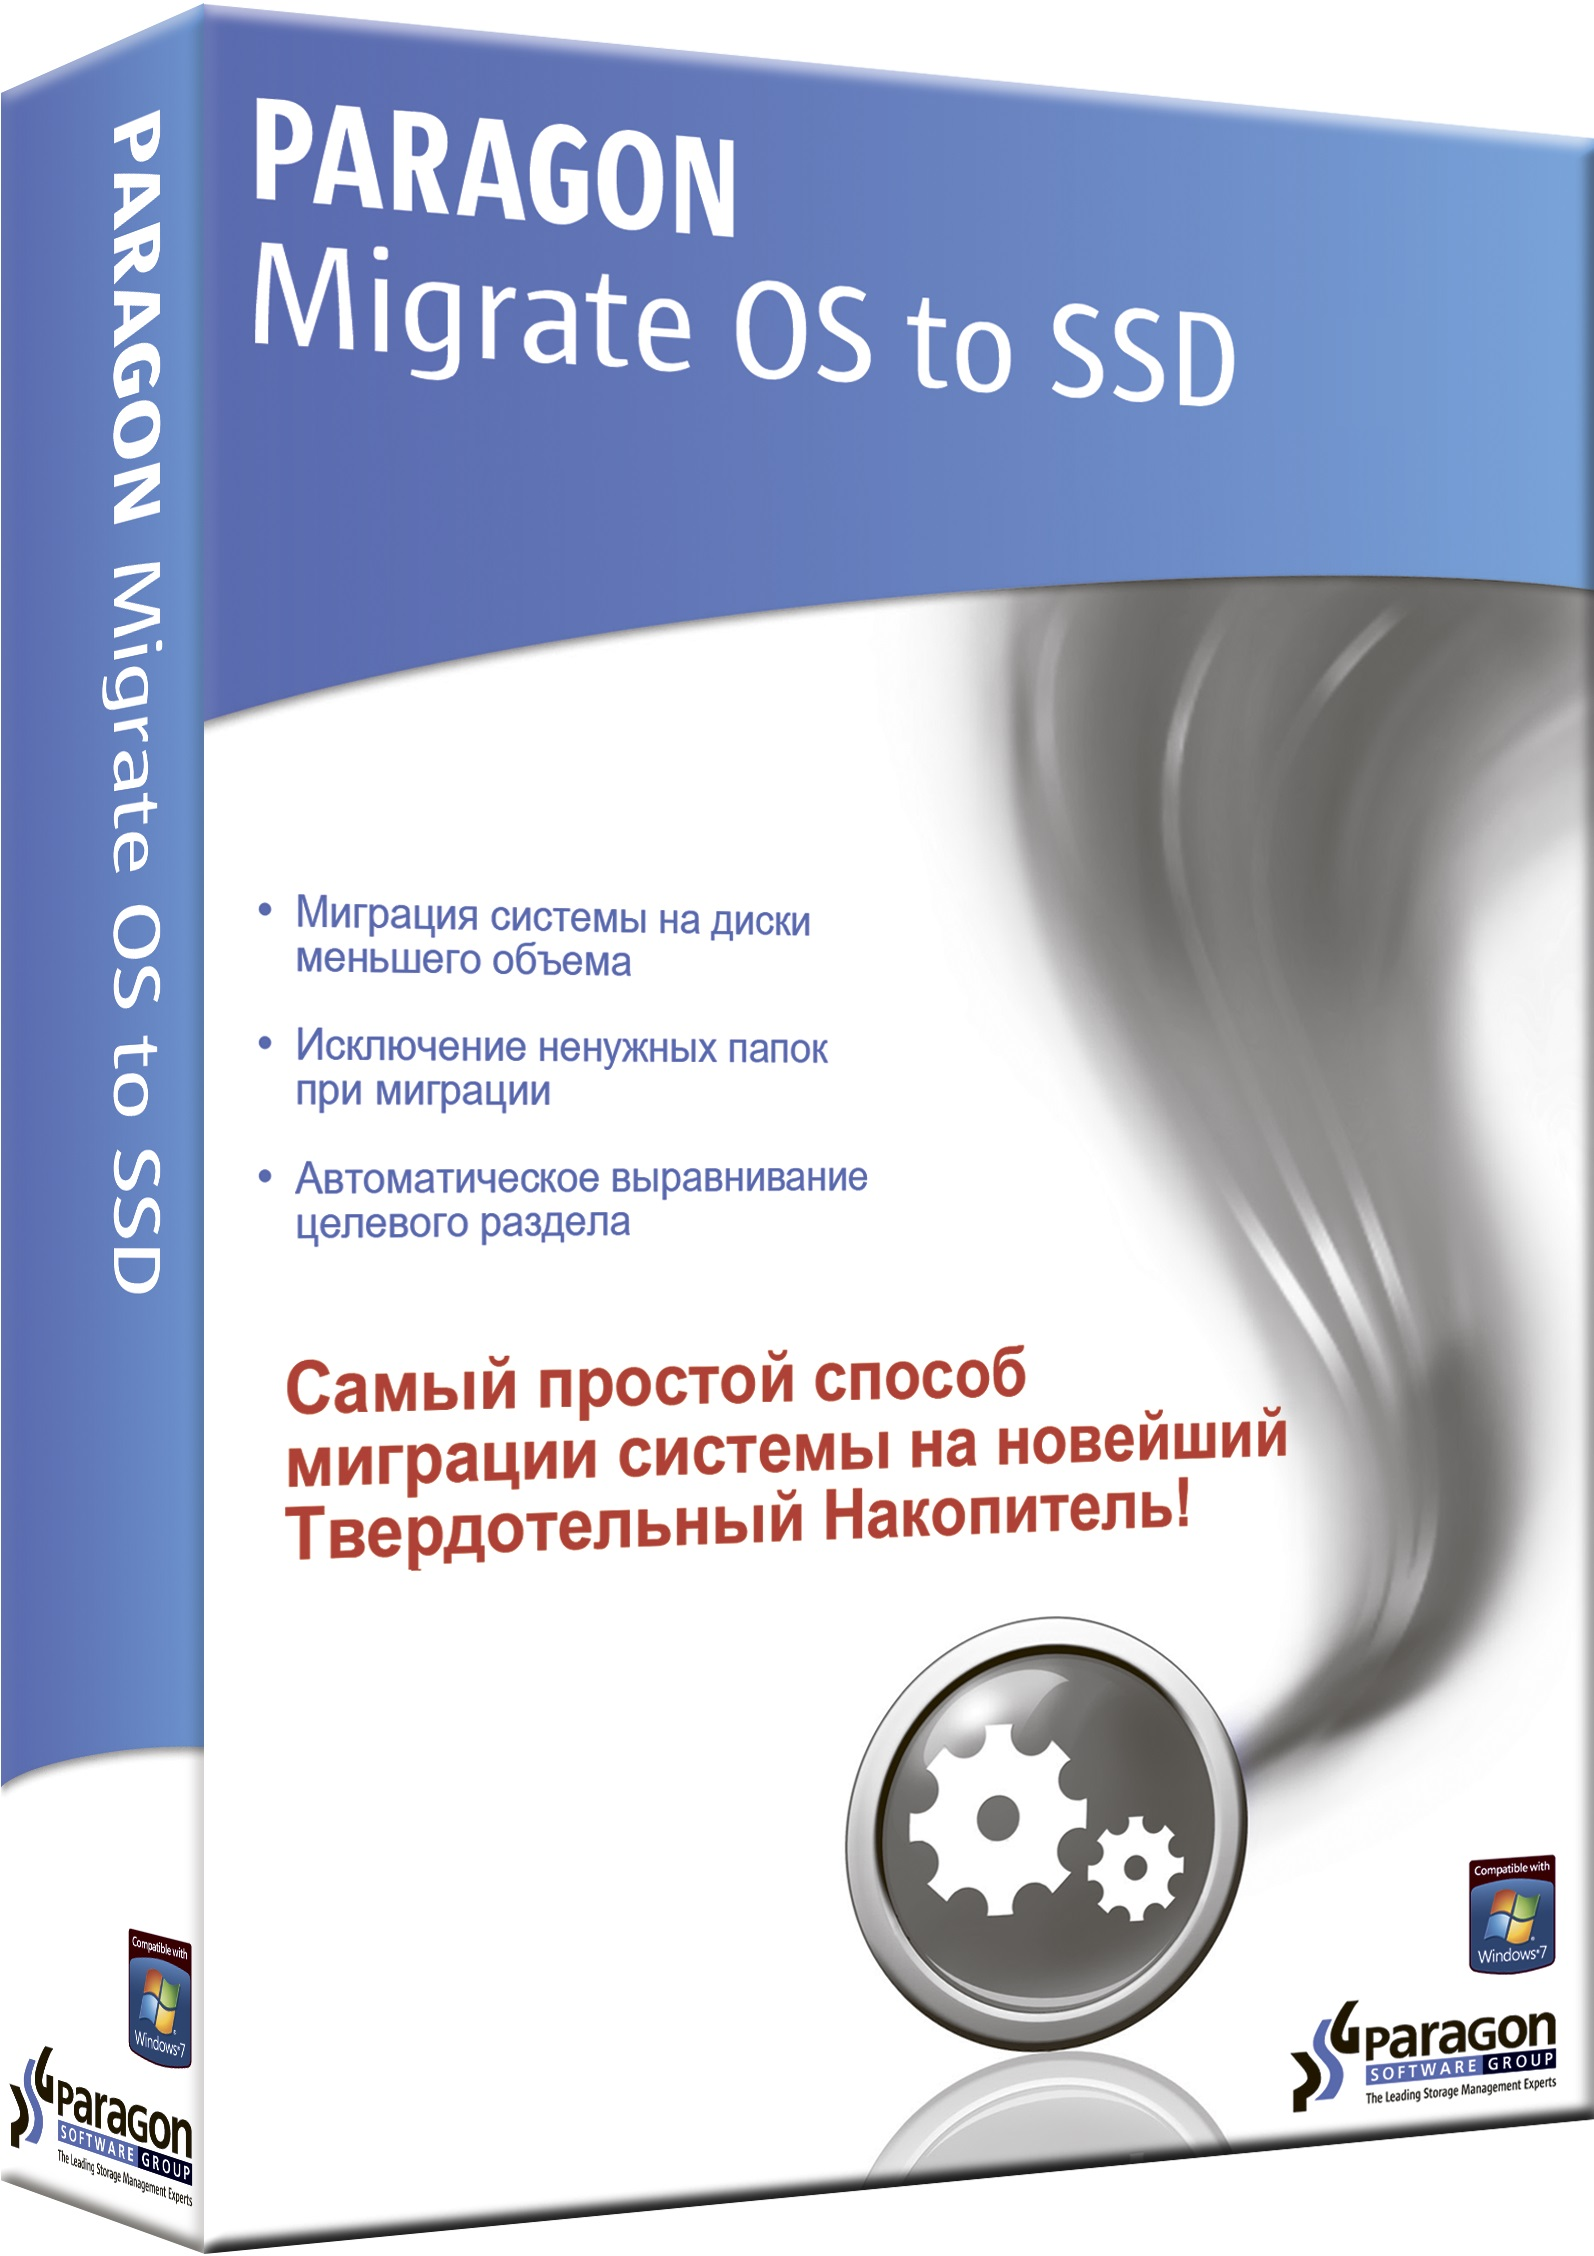 Paragon. Migrate OS to SSD (Цифровая версия)